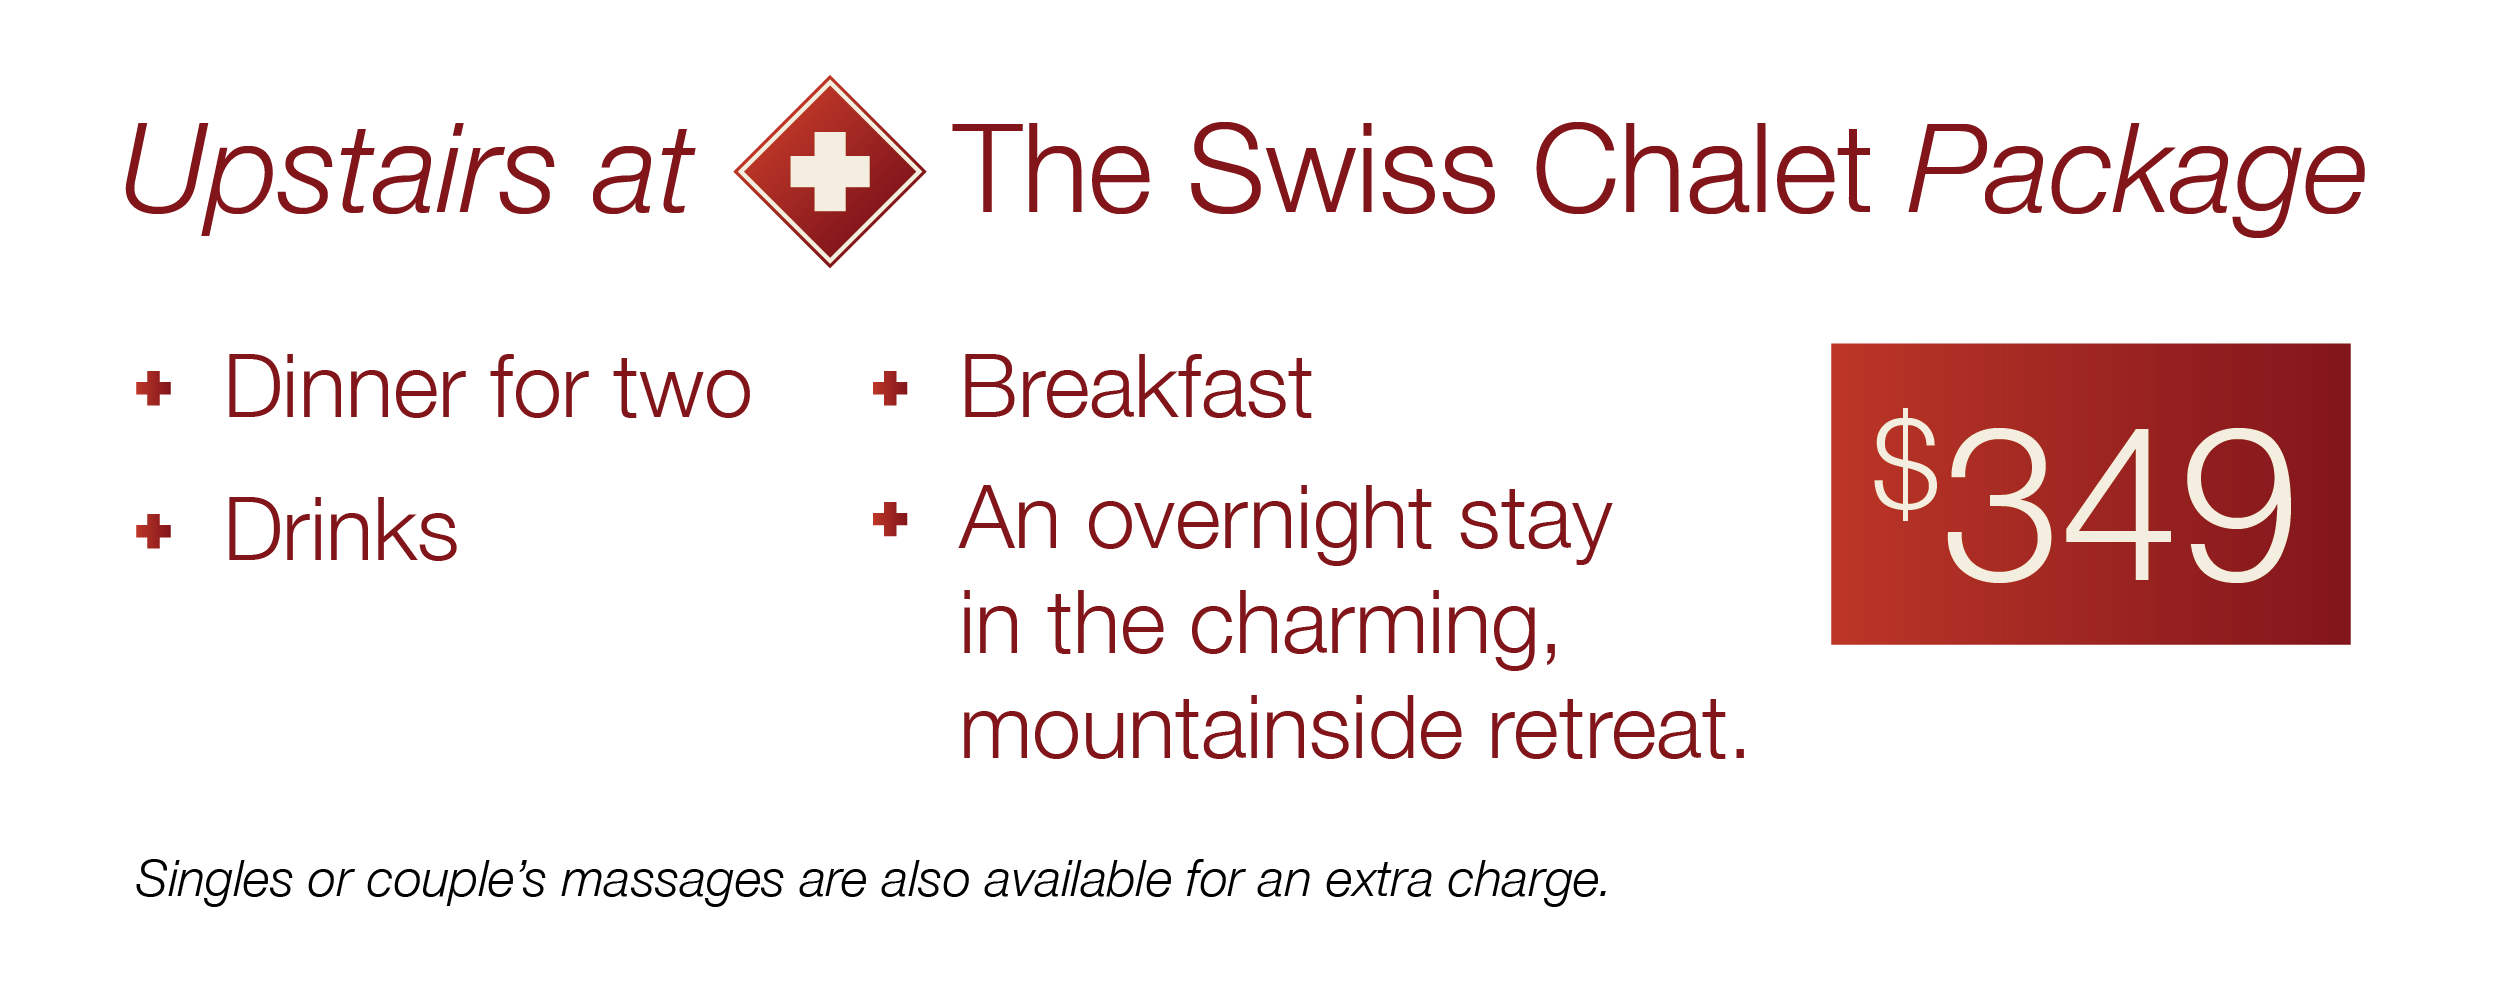 """The special """"Upstairs at the Swiss Chalet"""" package includes dinner for two, drinks, and breakfast along with an overnight stay in the charming, mountainside cottage atmosphere for $349. Singles or couple's massages are also available for an extra charge."""